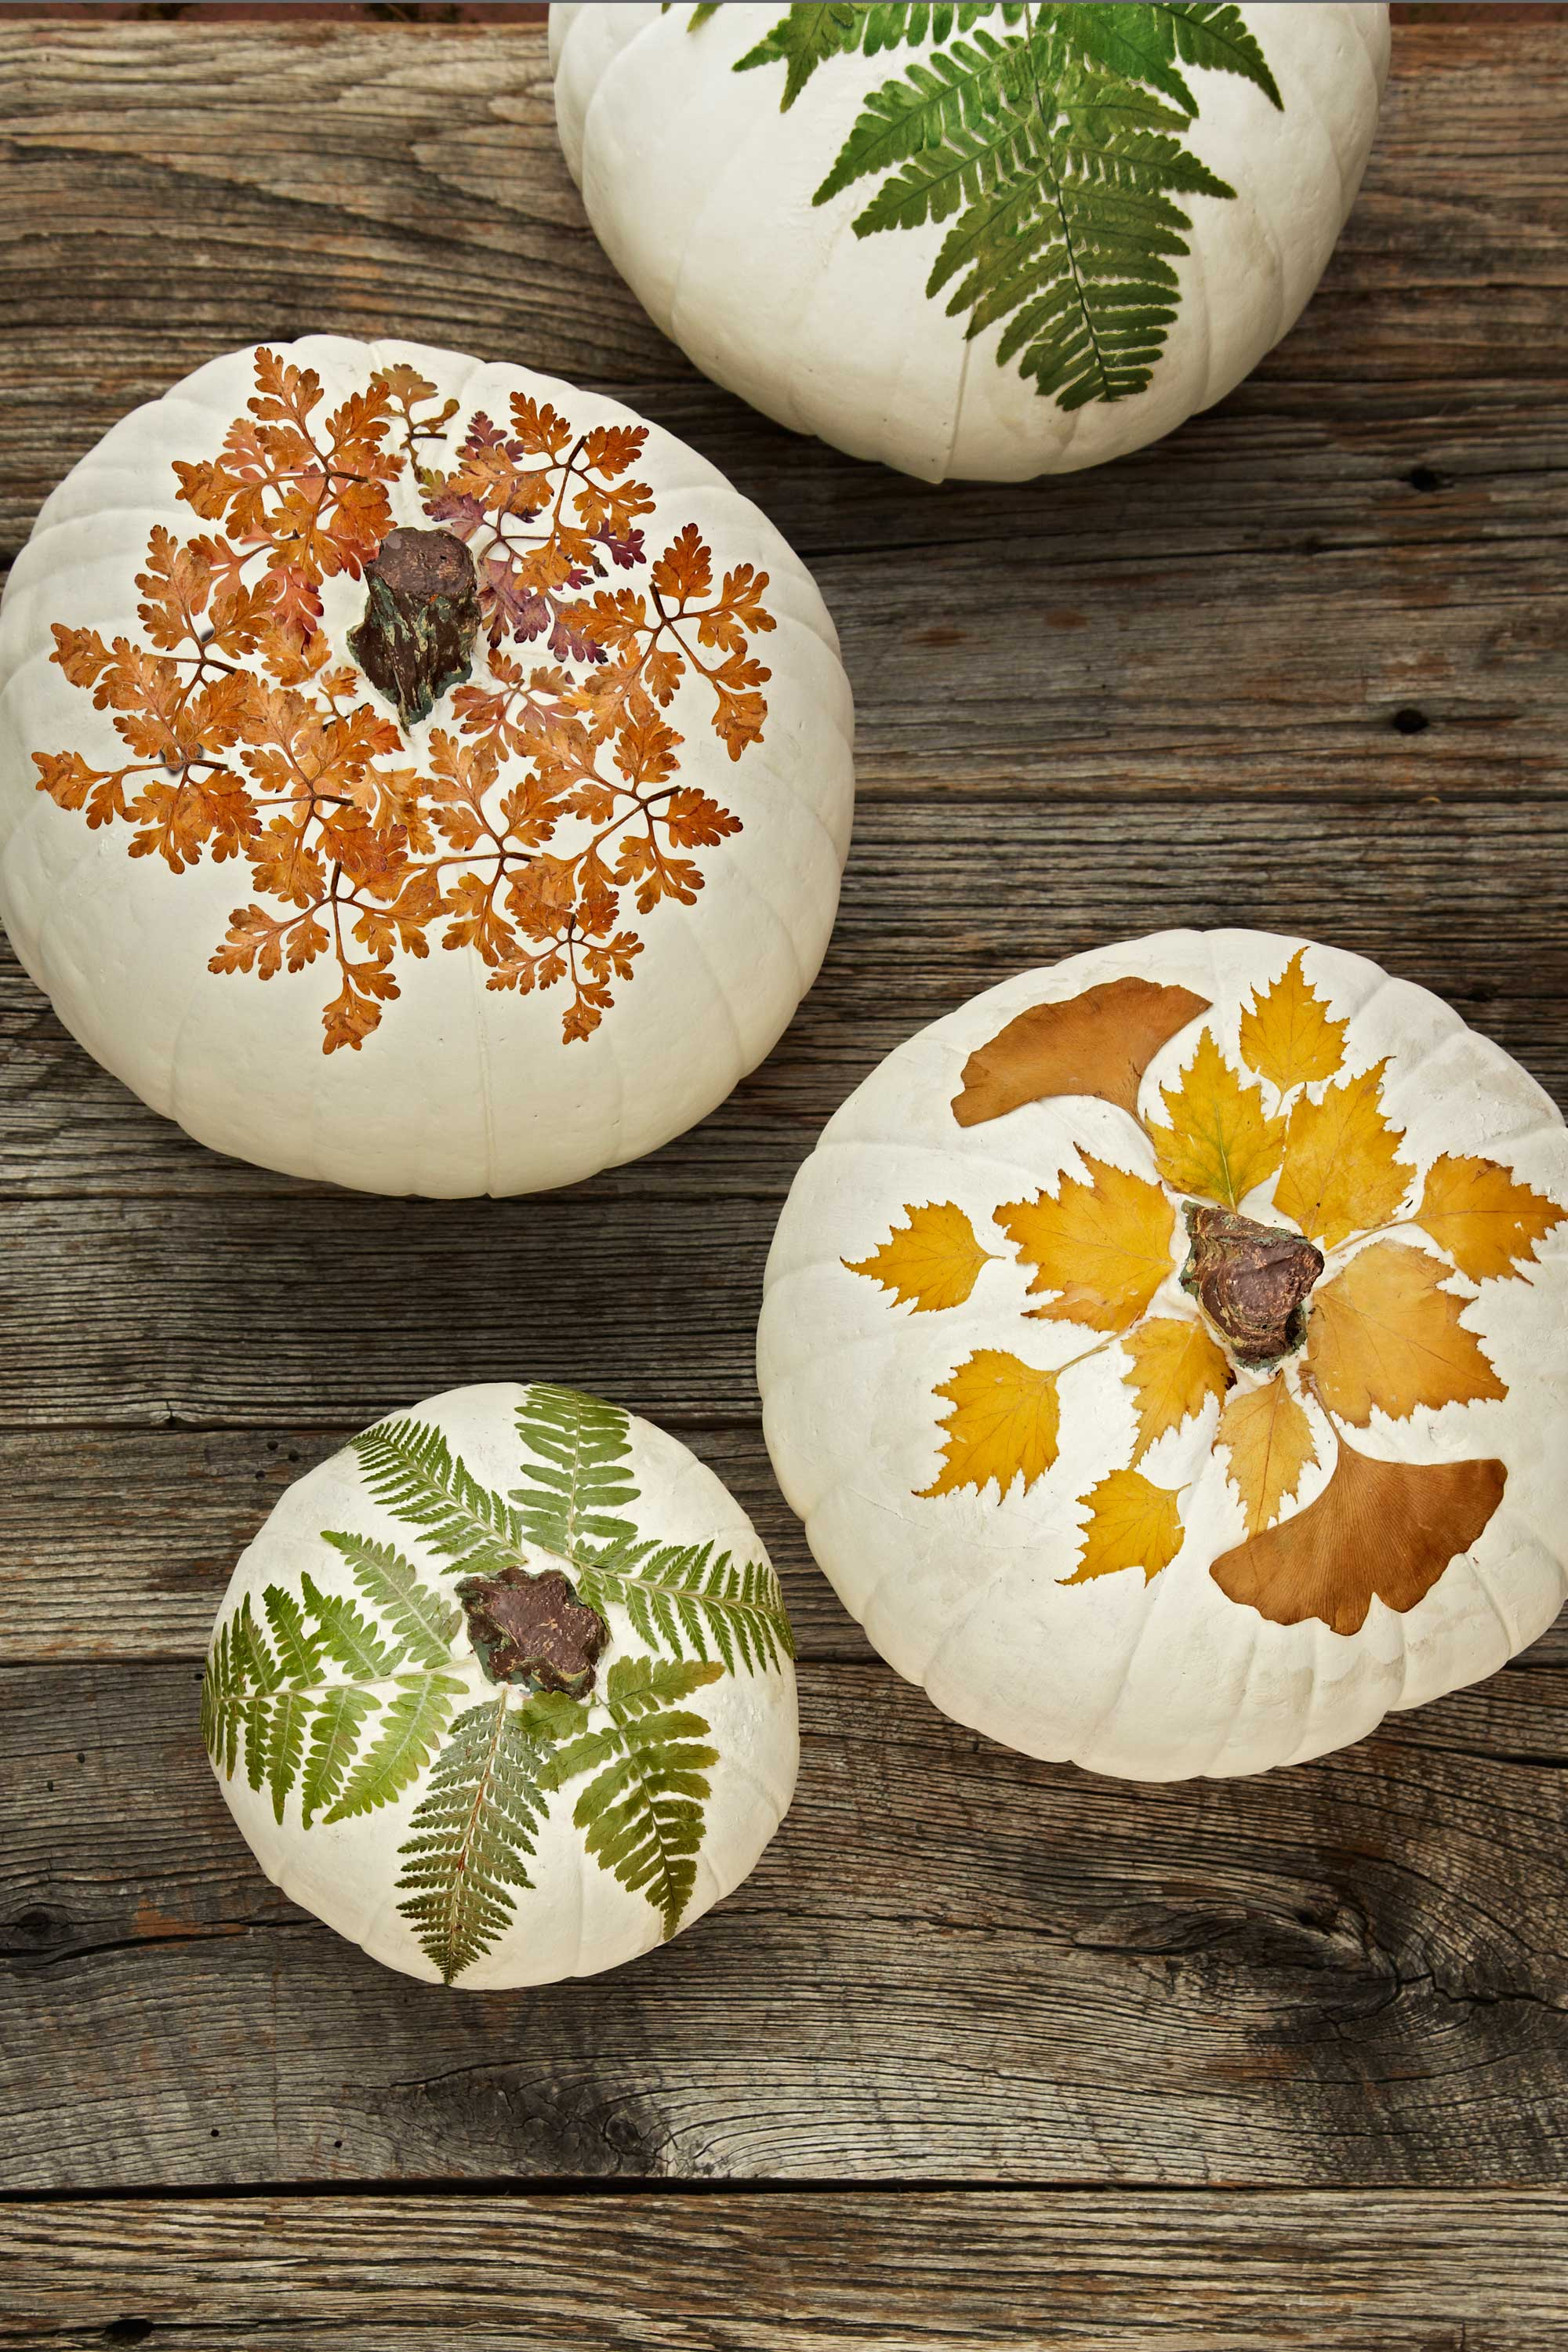 88 cool pumpkin decorating ideas easy halloween pumpkin decorations and crafts